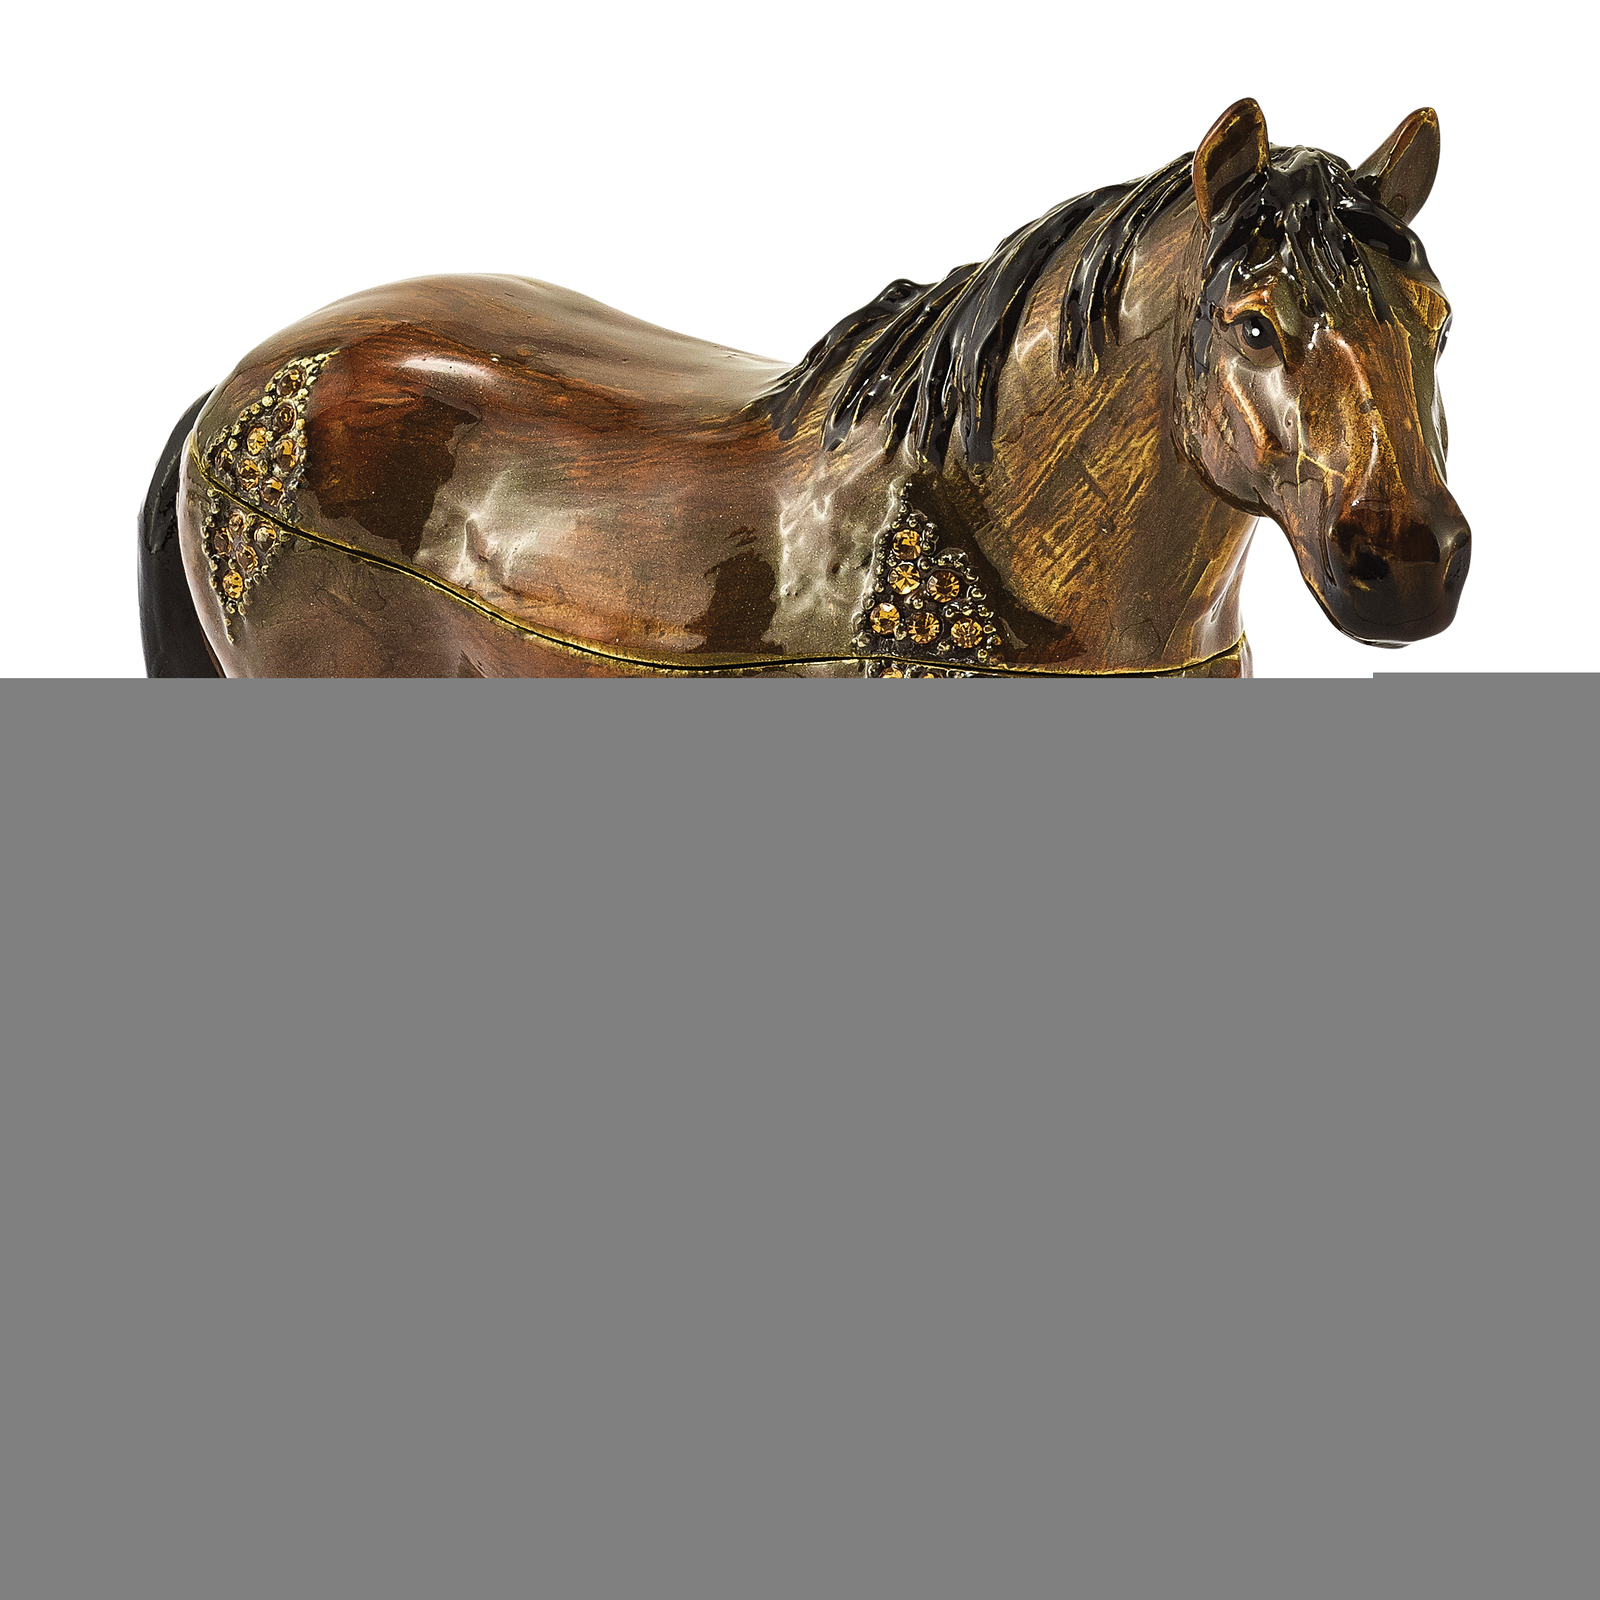 Primary image for Non Metal Bejeweled Spencer Dark Bay Horse Trinket Box (Length=5.1) (Width=1.4)